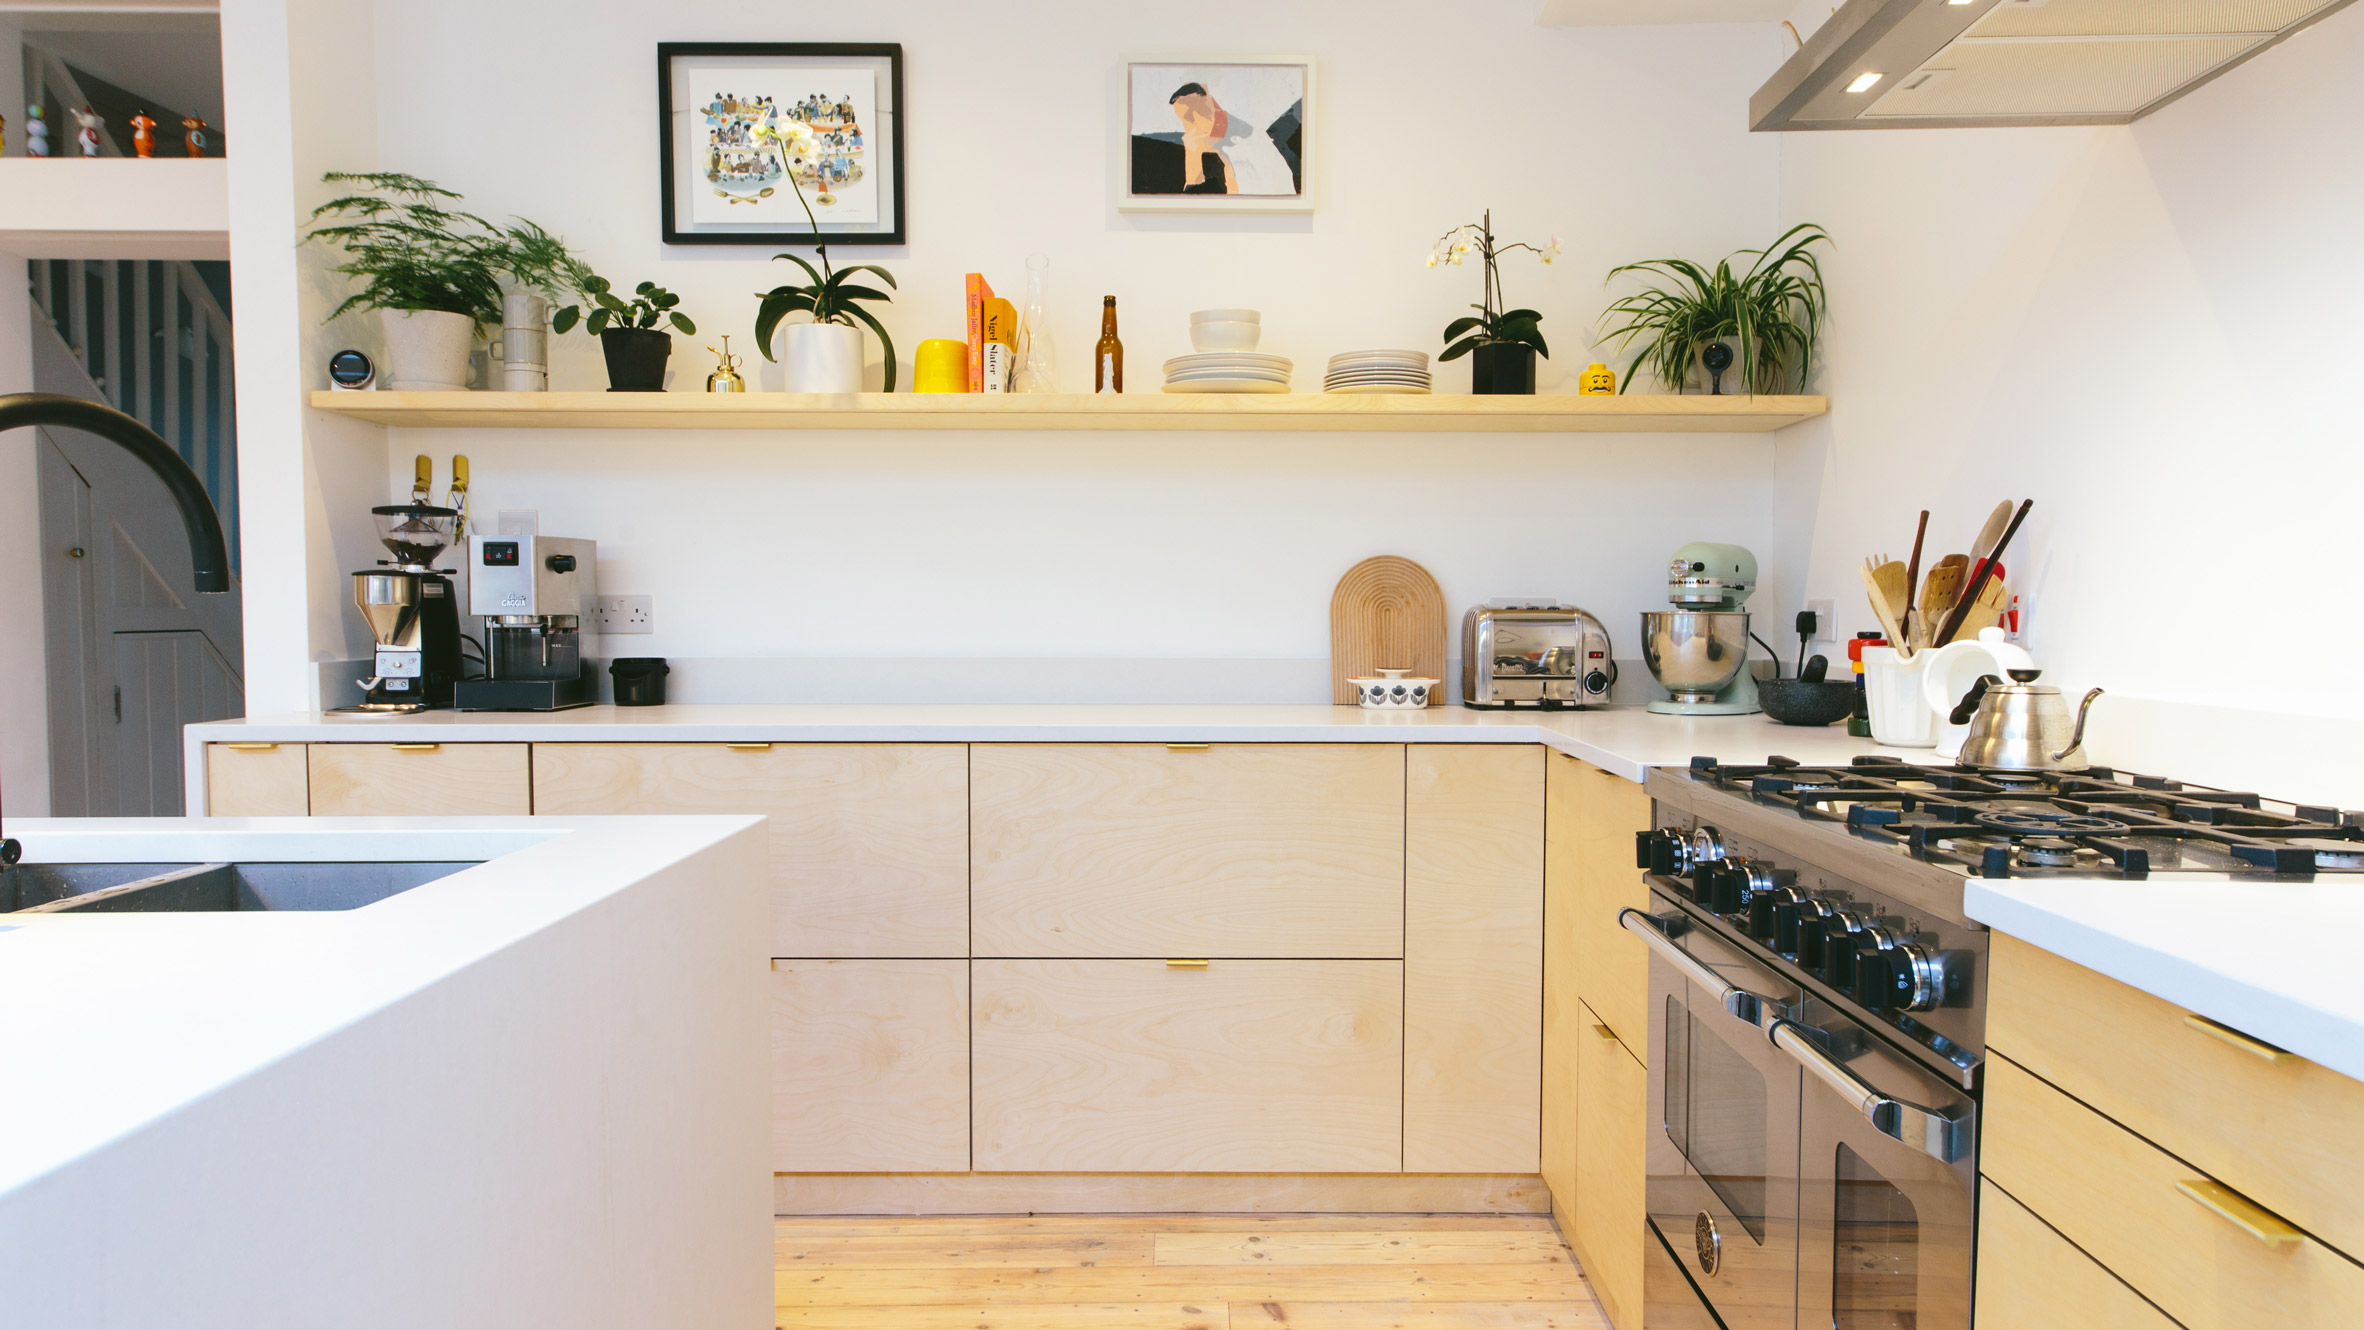 Plykea hacks IKEAs Metod kitchens with plywood fronts